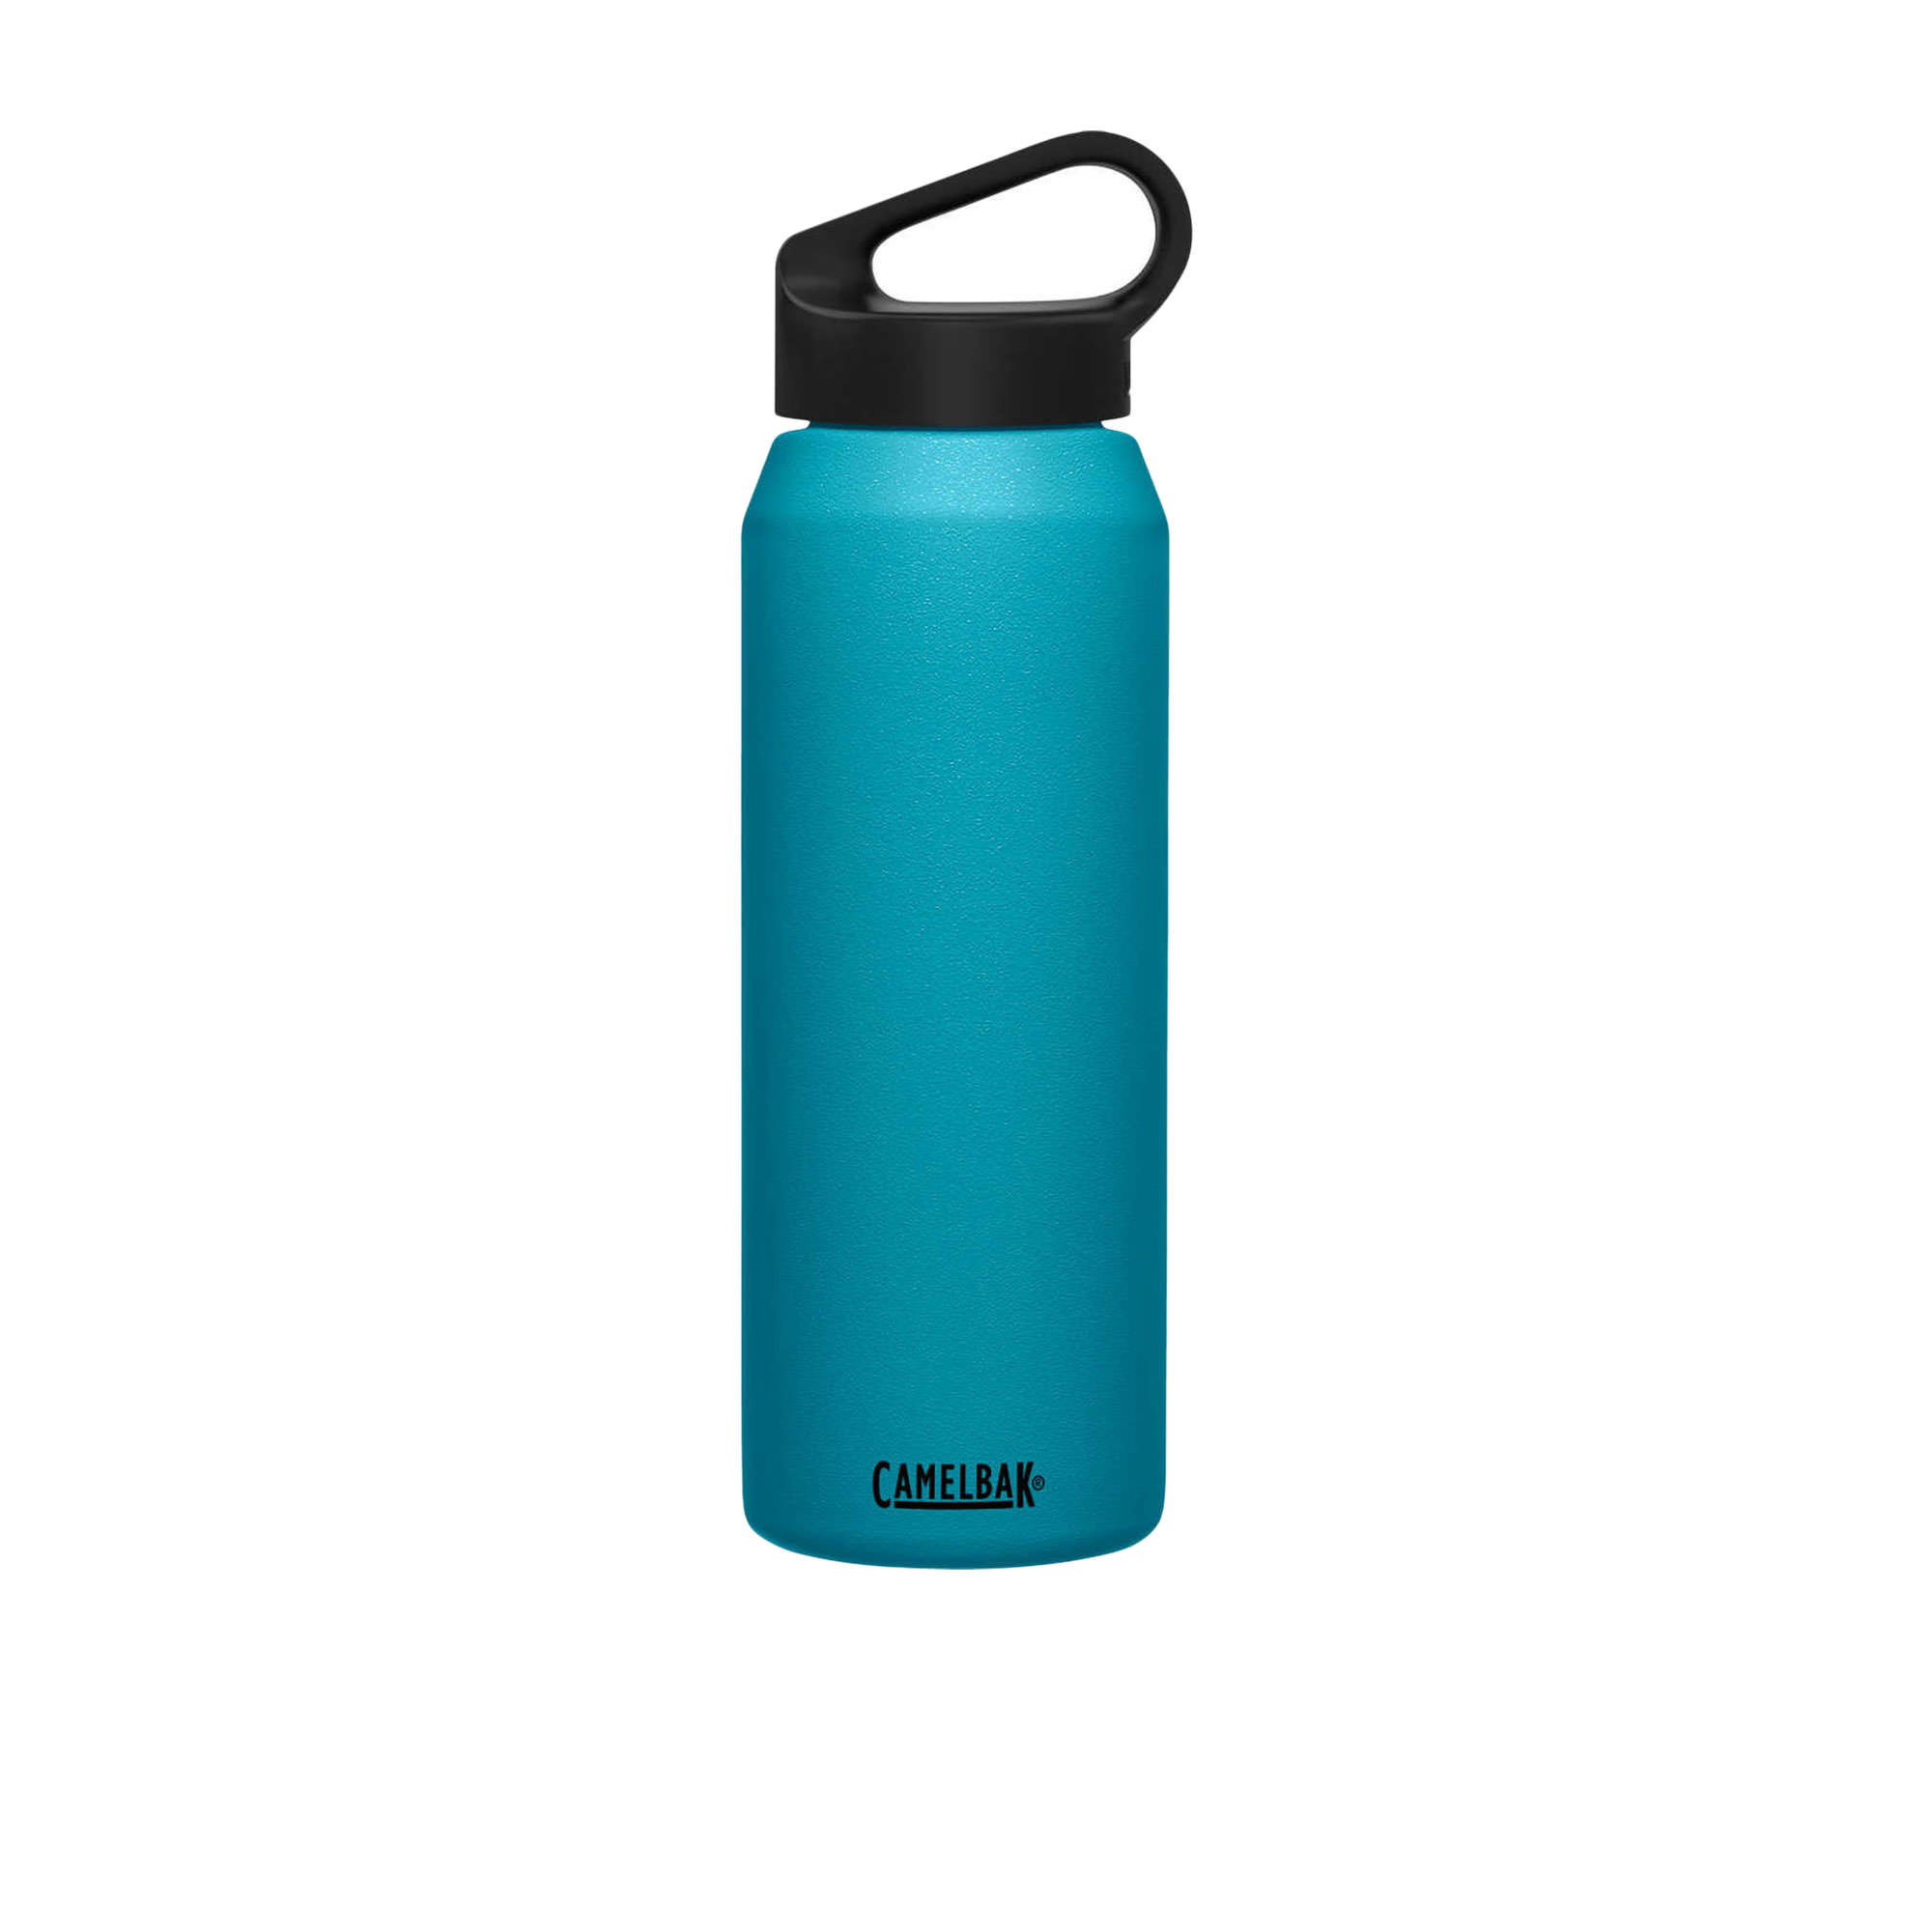 Camelbak Carry Cap Stainless Steel Insulated Drink Bottle 1L Larkspur Blue